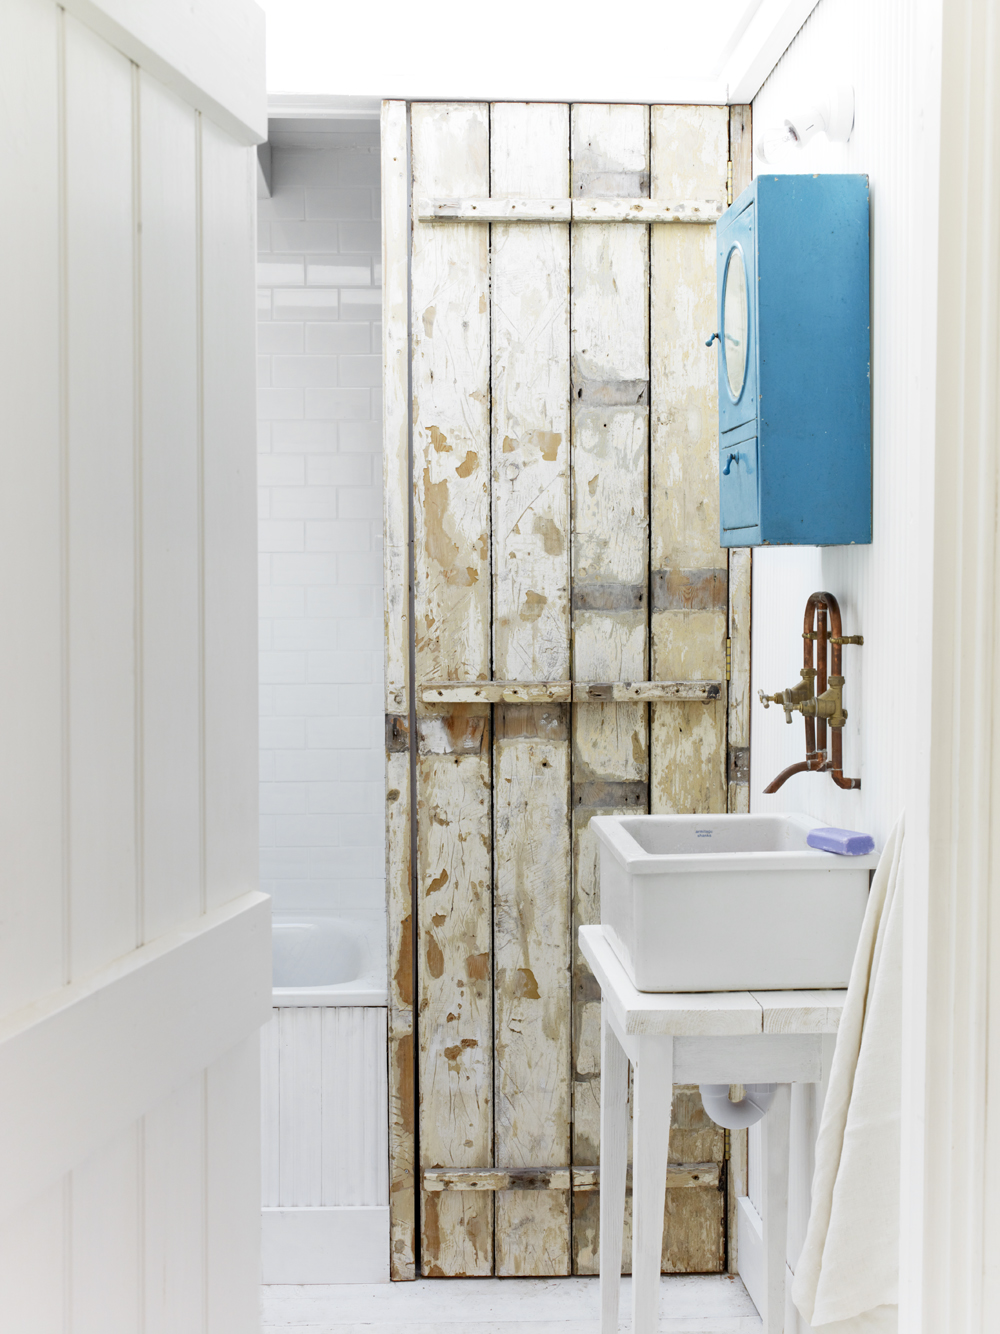 Take a tour of the gorgeous White Cabin in the village of Winchelsea, a beach town in East Sussex, South England. - Bathroom